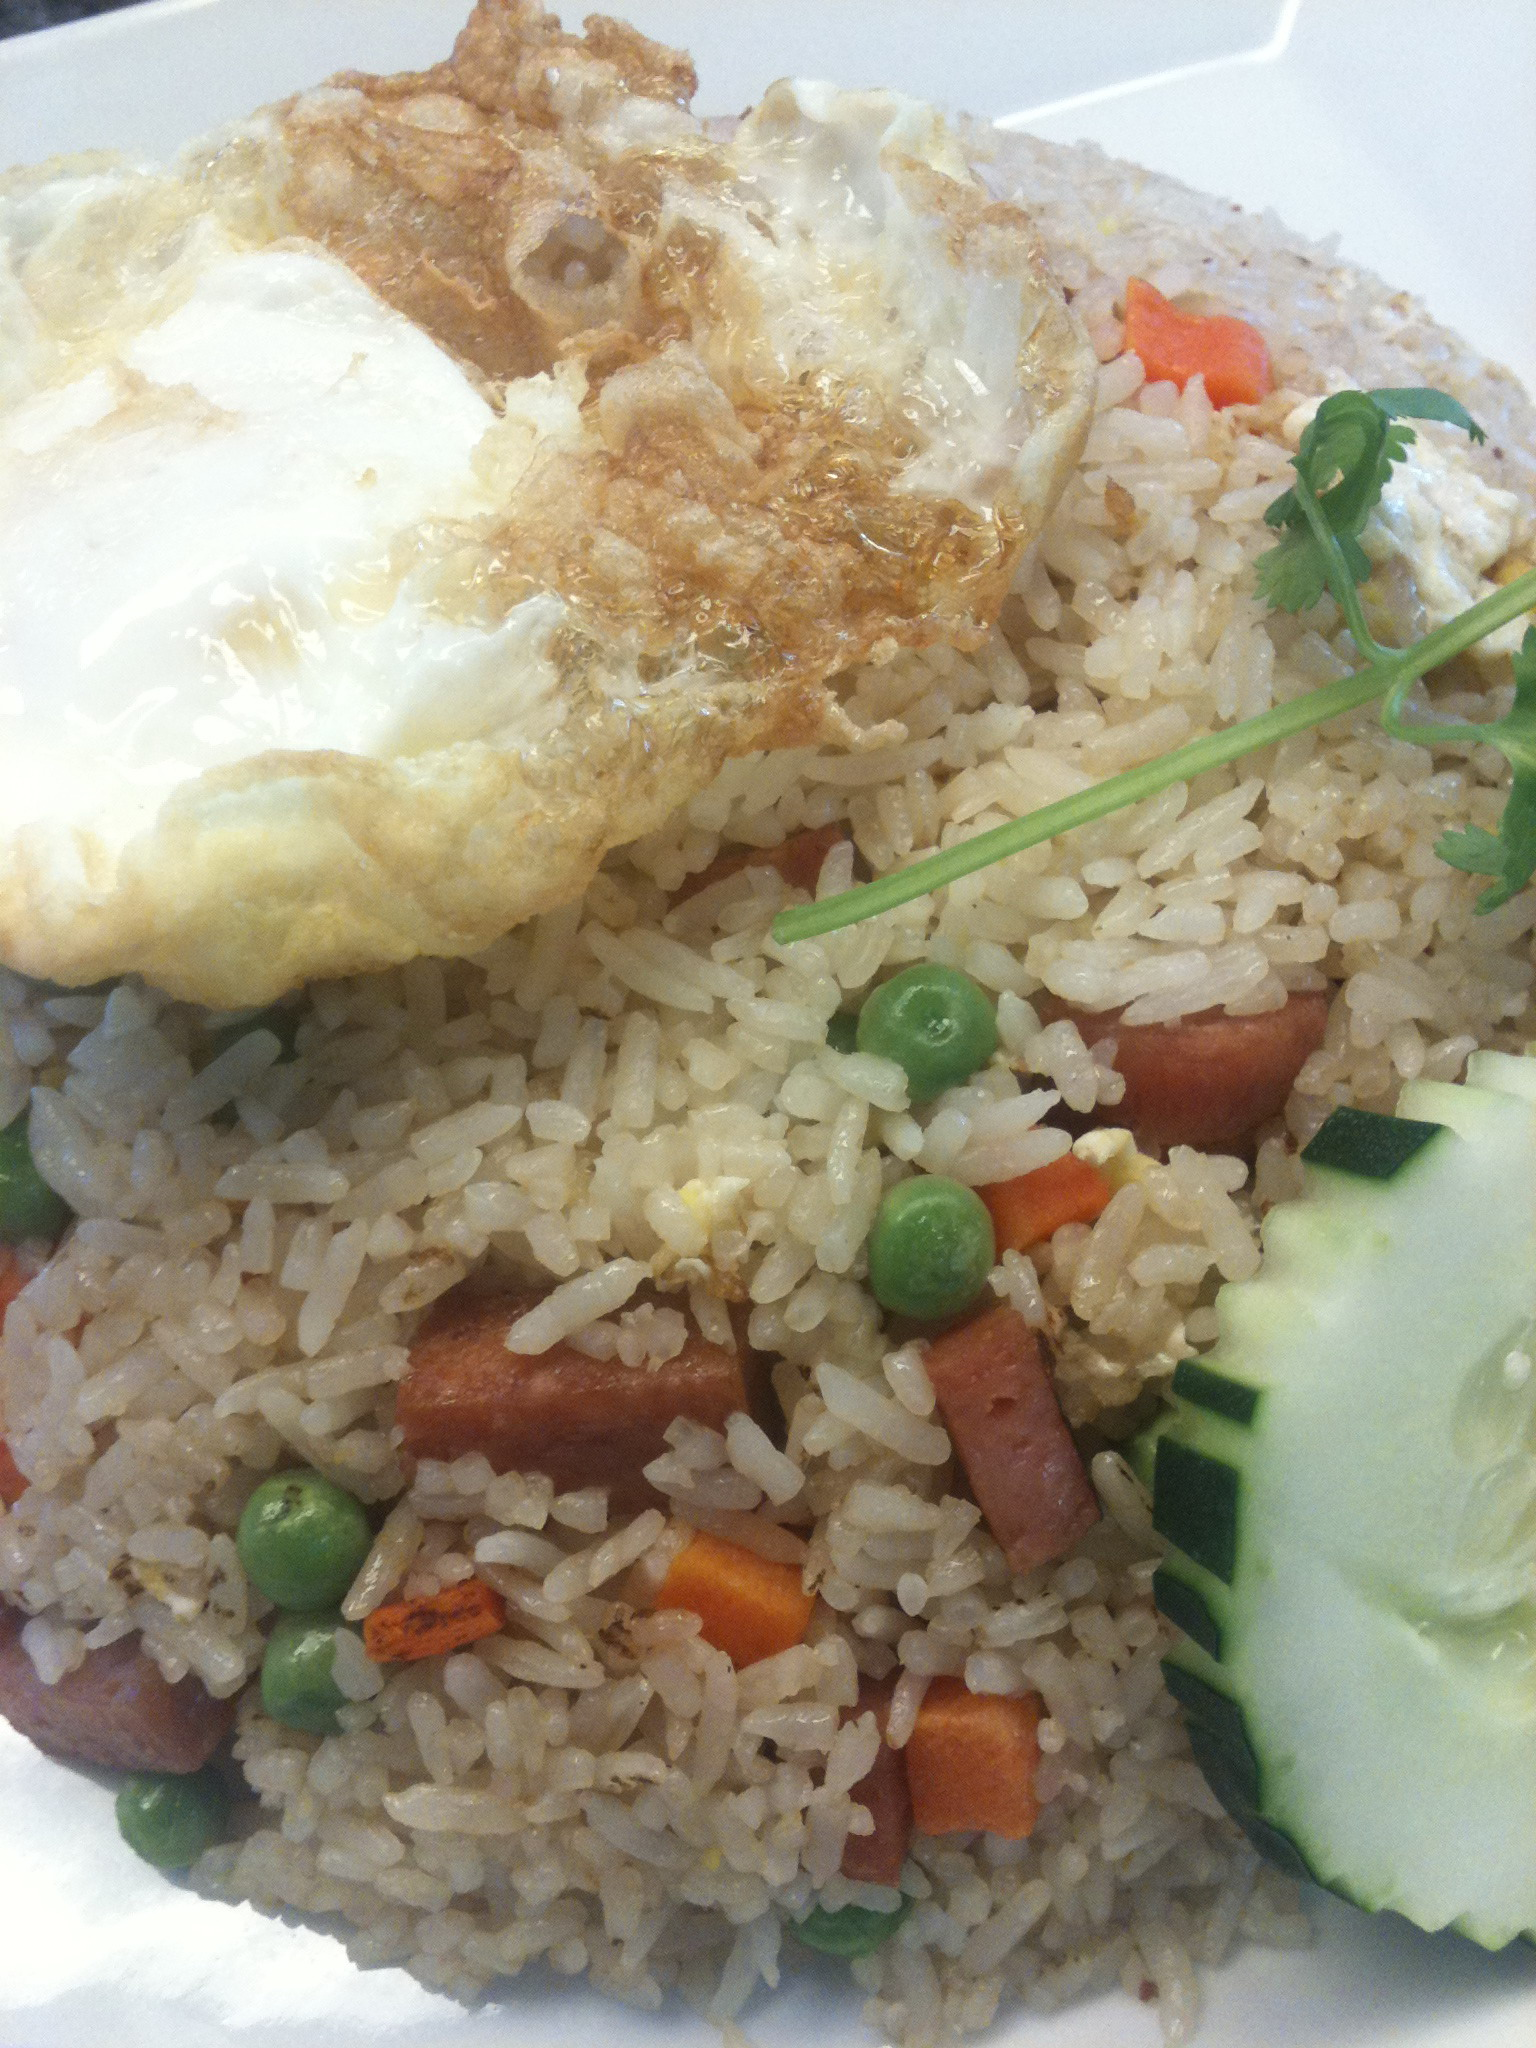 The Bowl Fried Rice